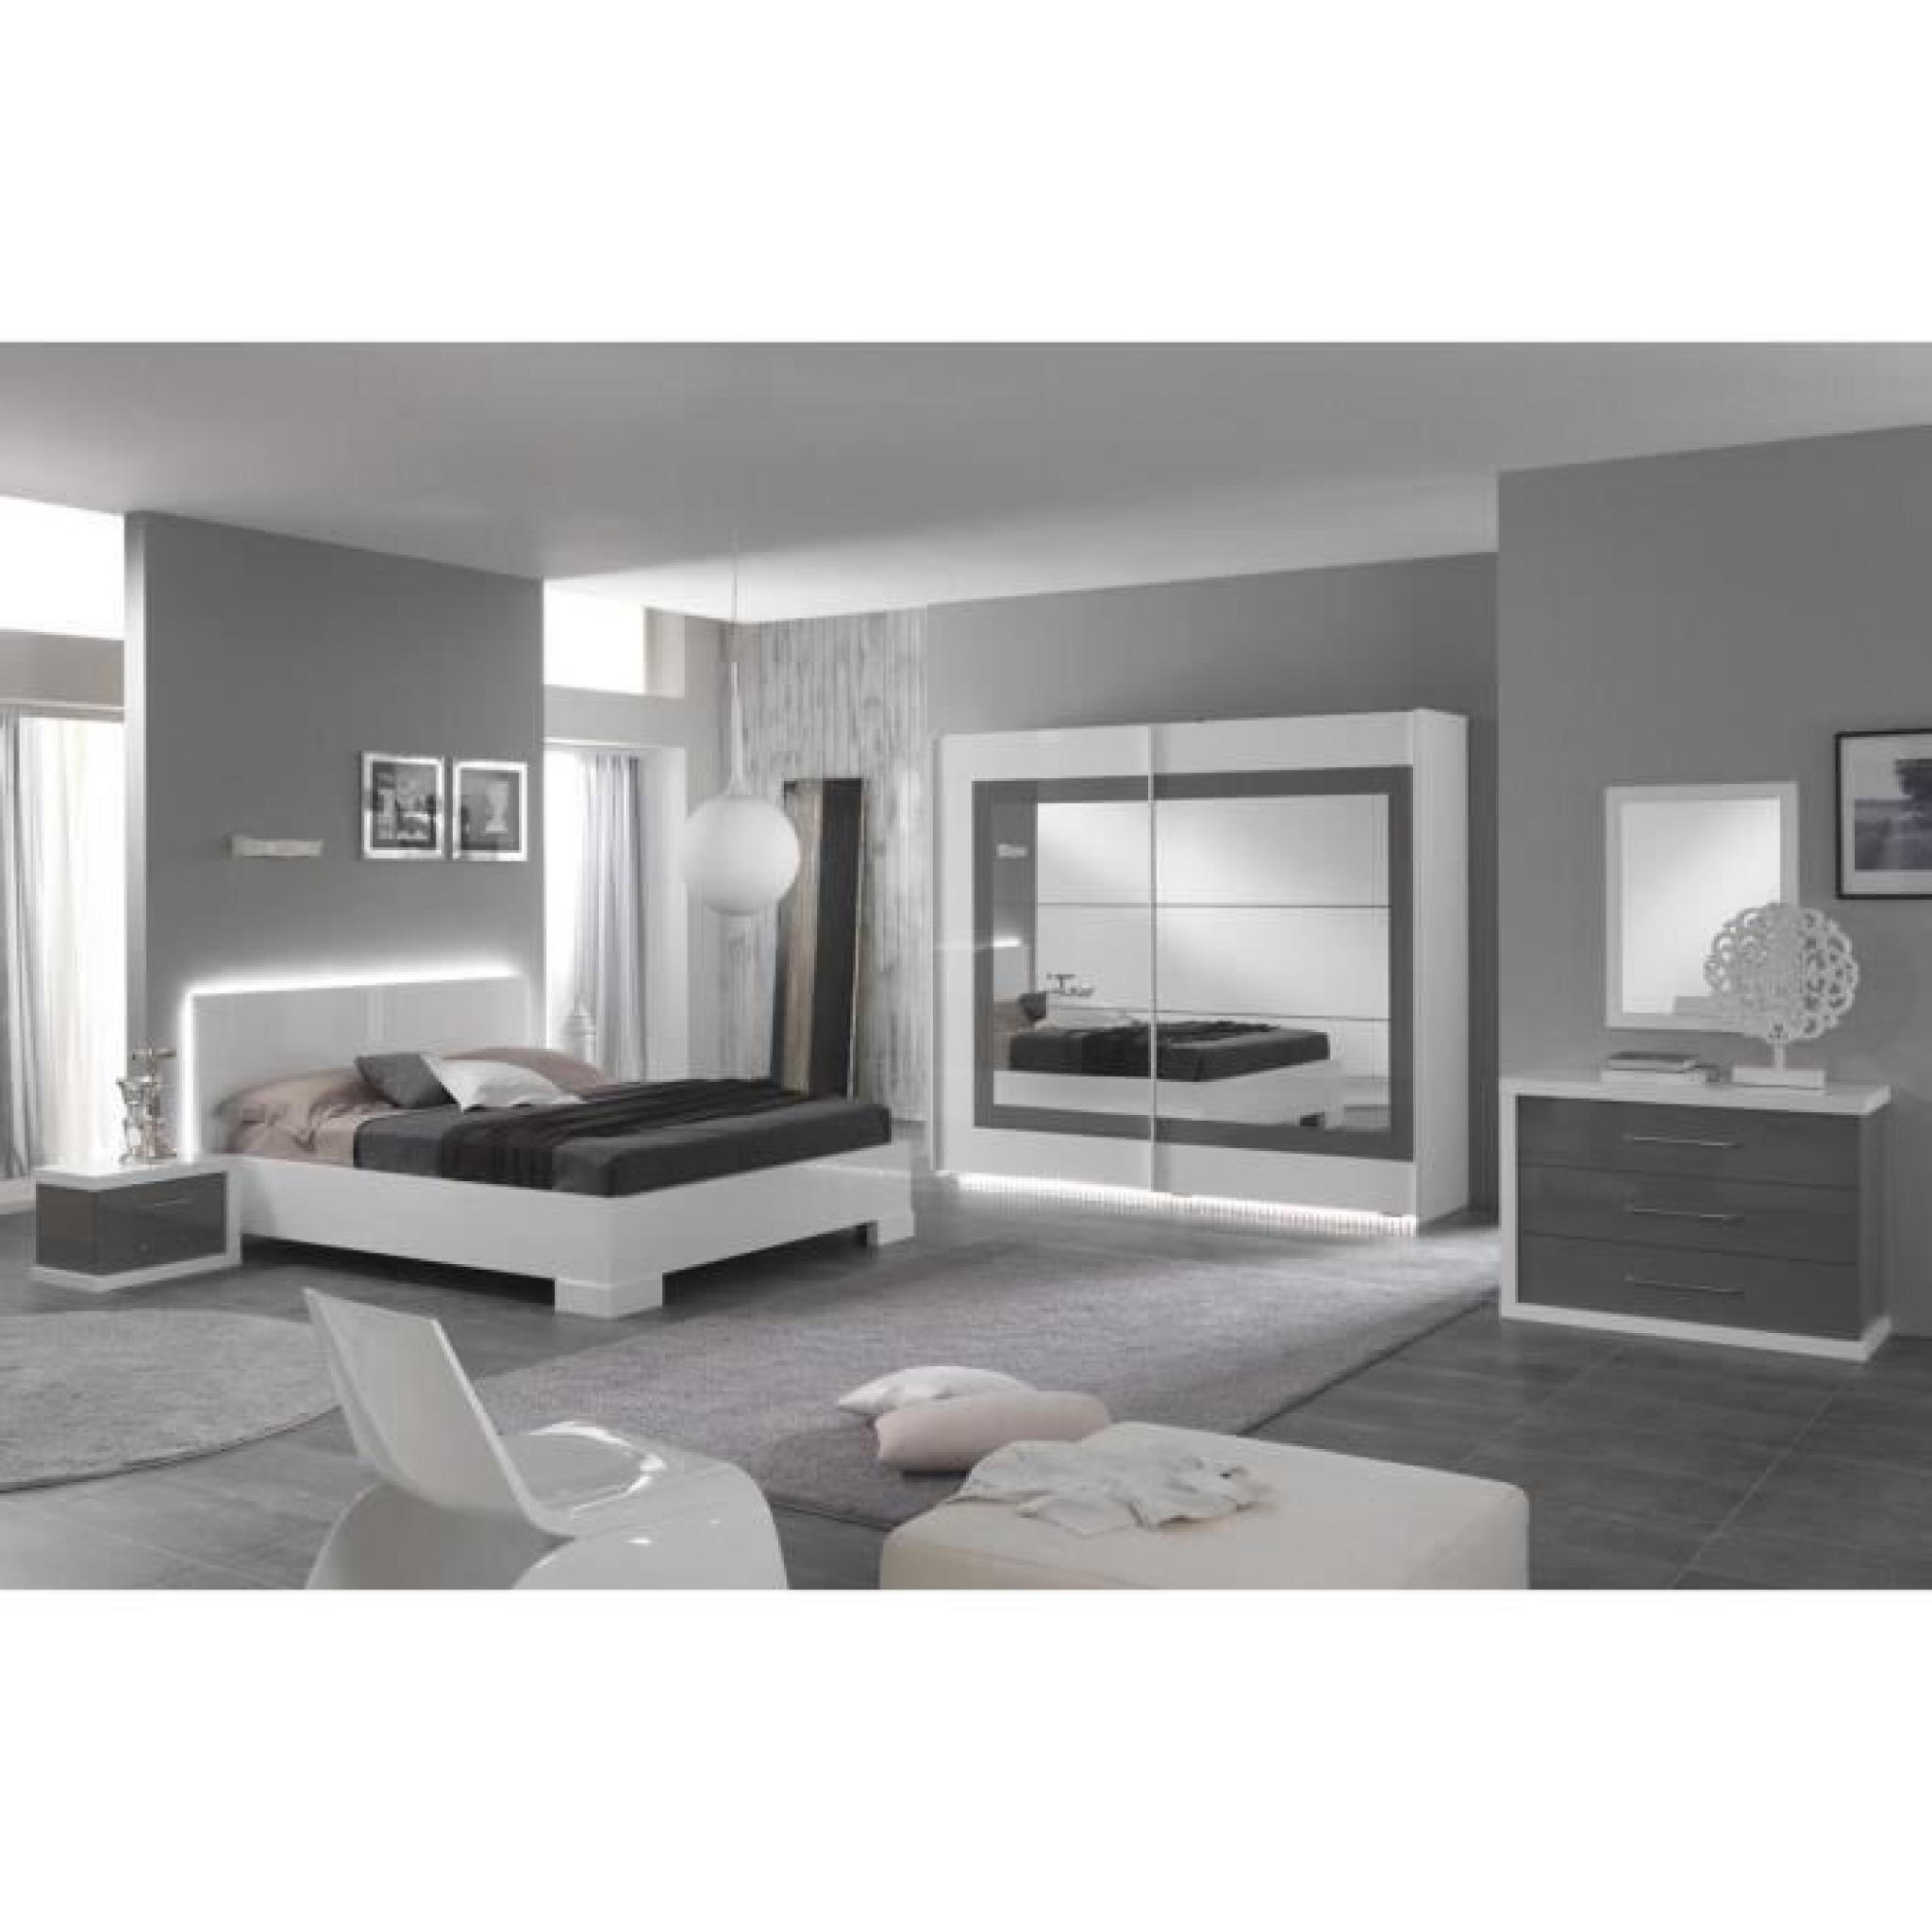 lit adulte 160x200 blanc laqu avec clairage led achat vente lit pas cher couleur et. Black Bedroom Furniture Sets. Home Design Ideas